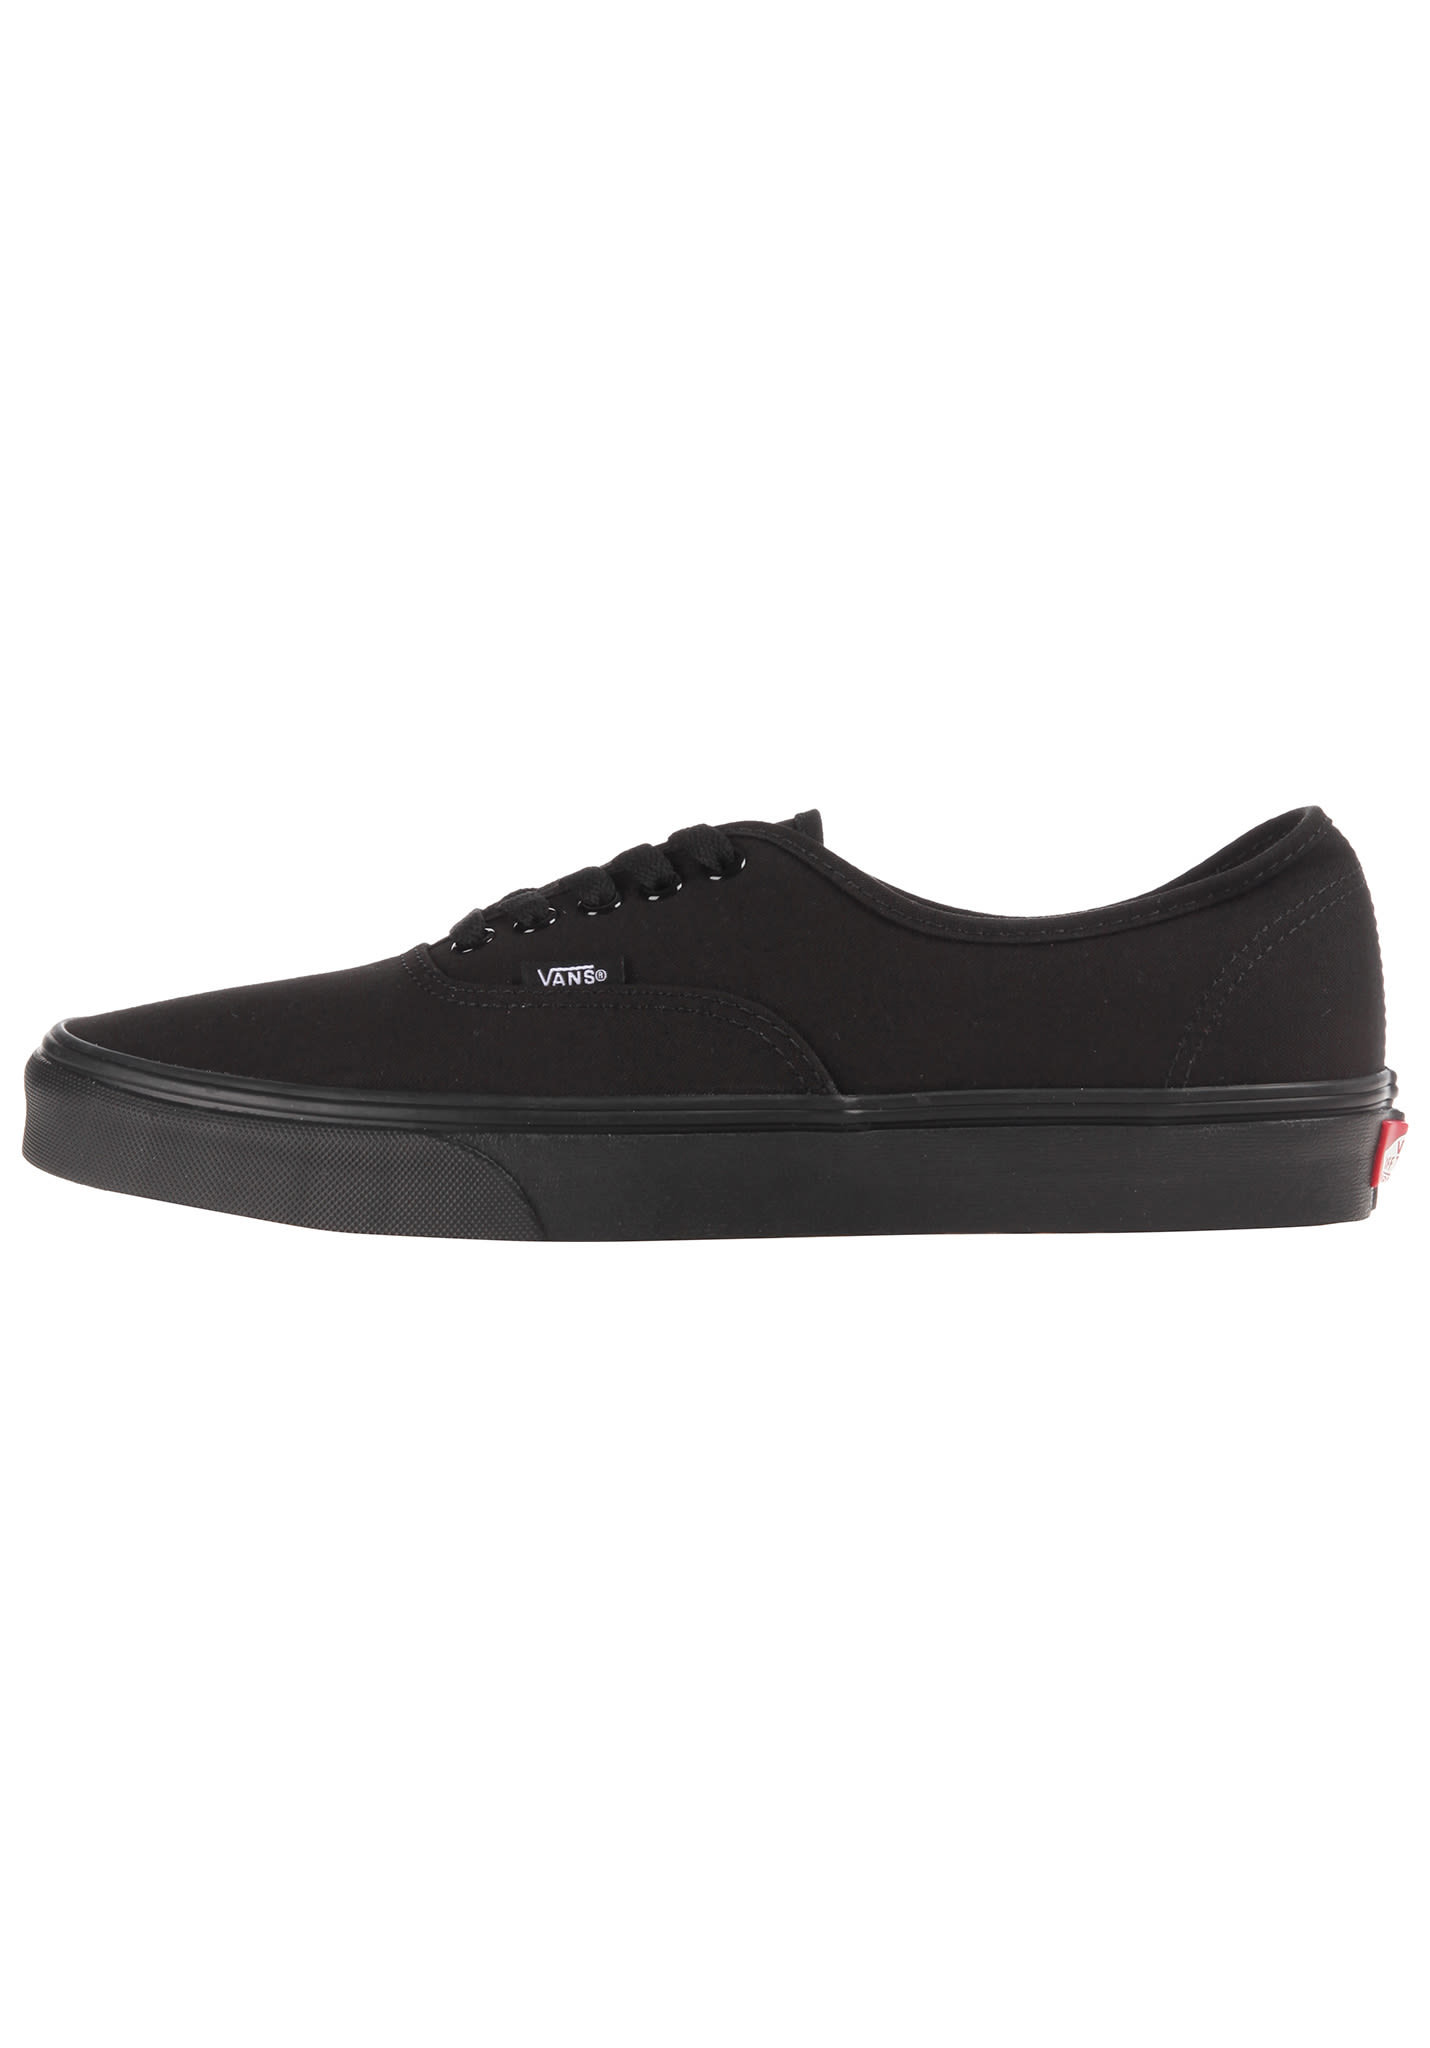 VANS Authentic - Sneaker - Schwarz